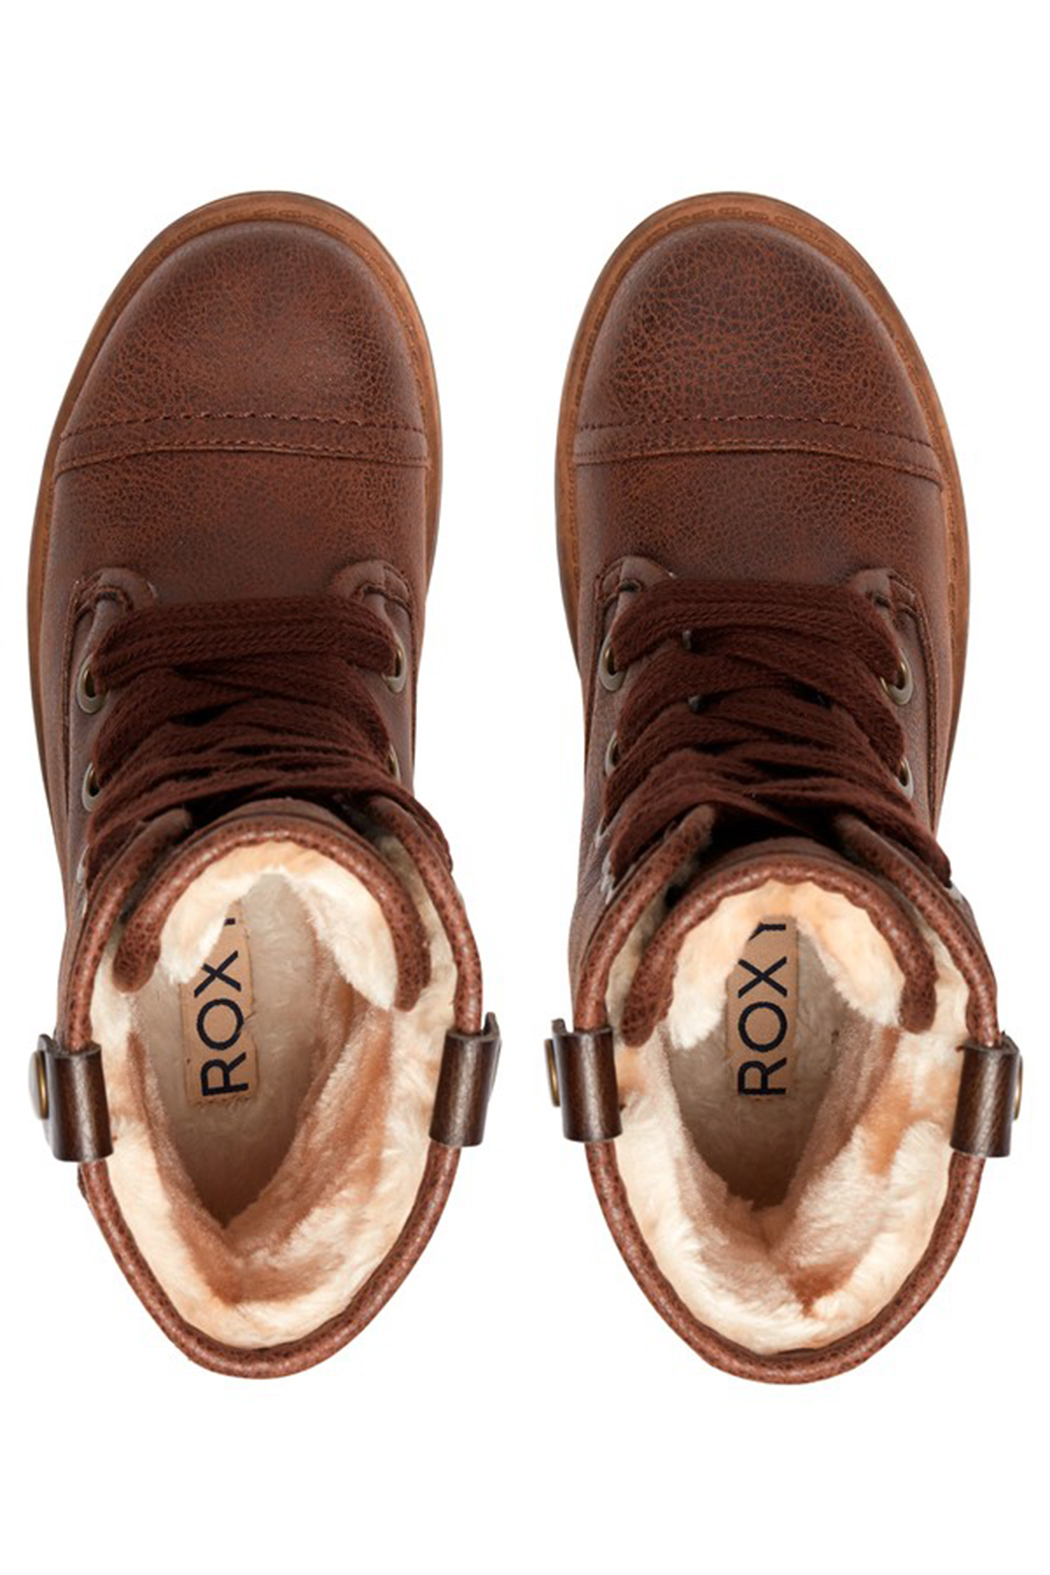 Roxy RG Bruna Lace Up Boots - Front Full Image